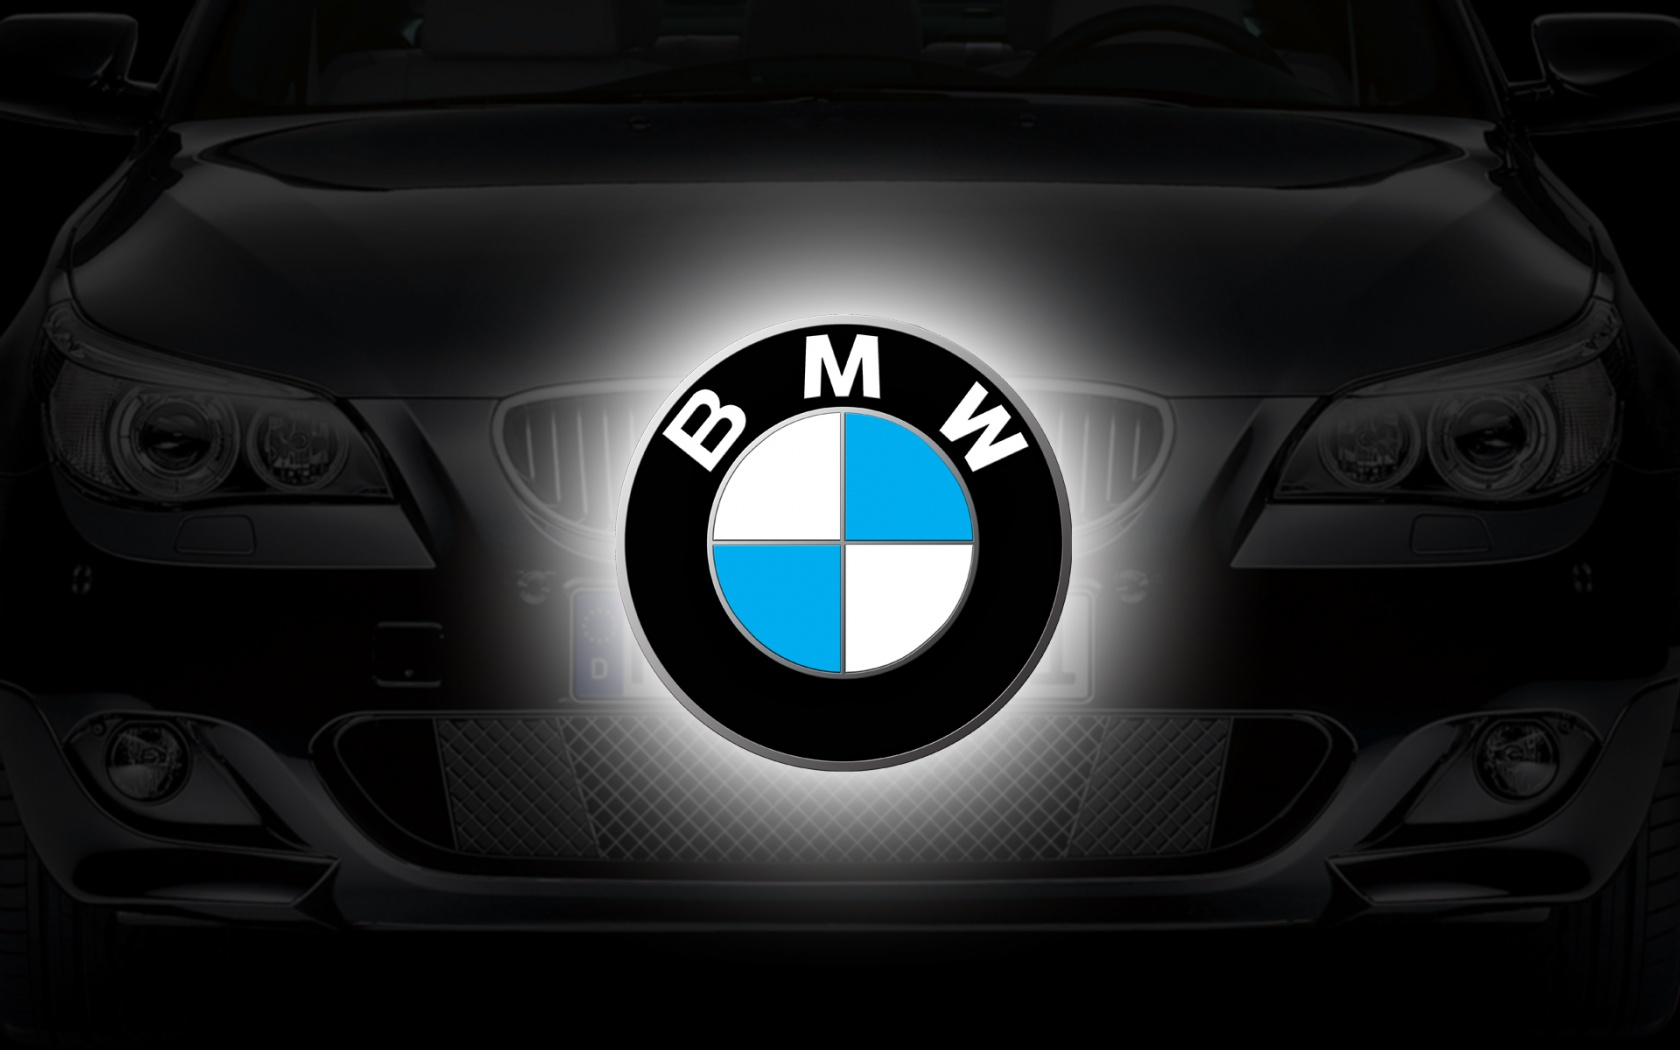 Bmw wallpaper 1680x1050